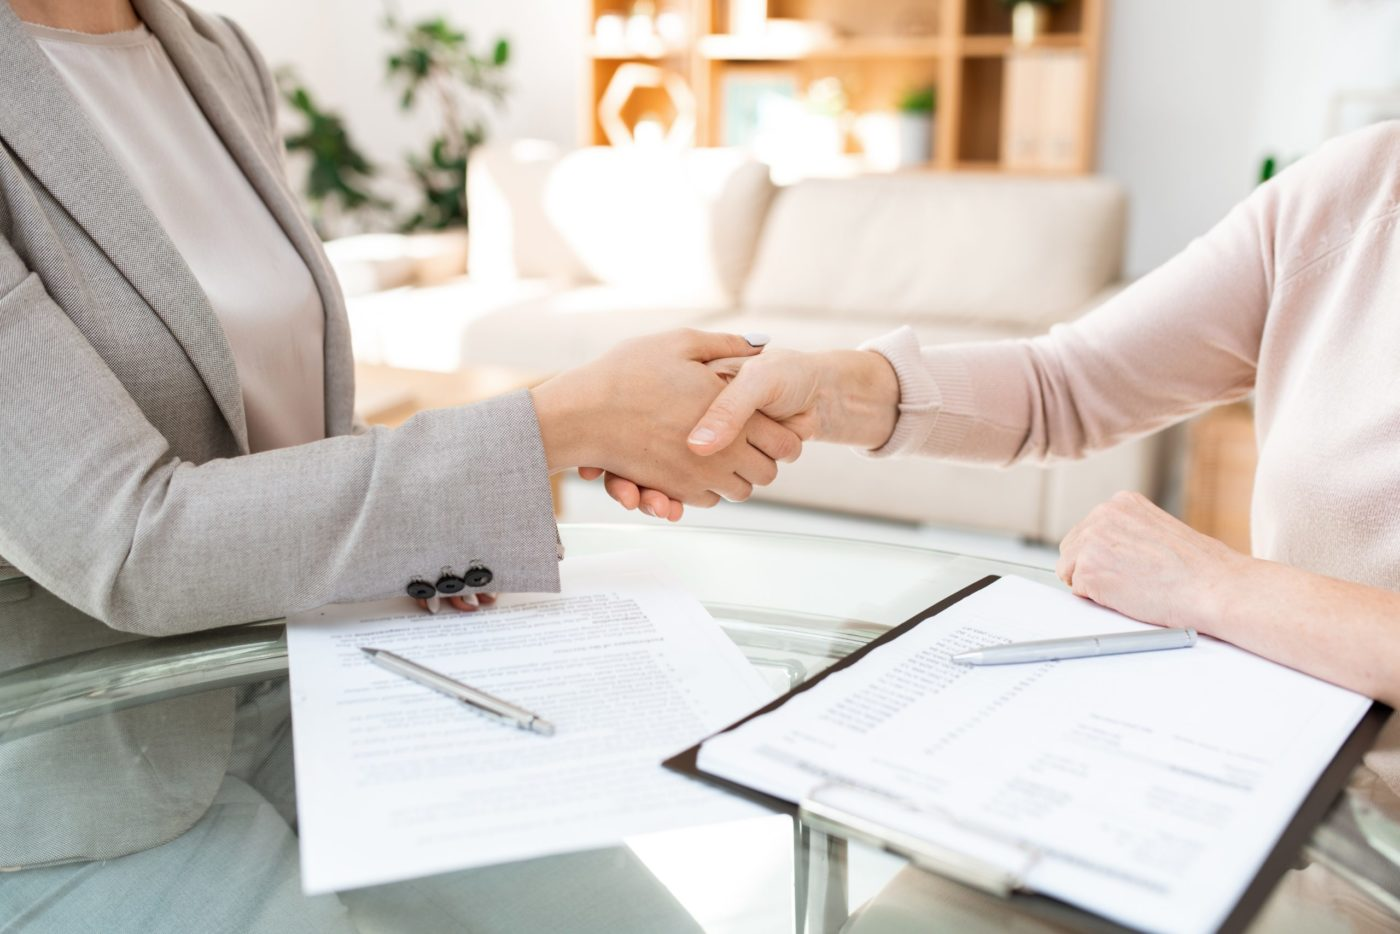 Handshake over table of young and mature females after negotiating and signing financial papers